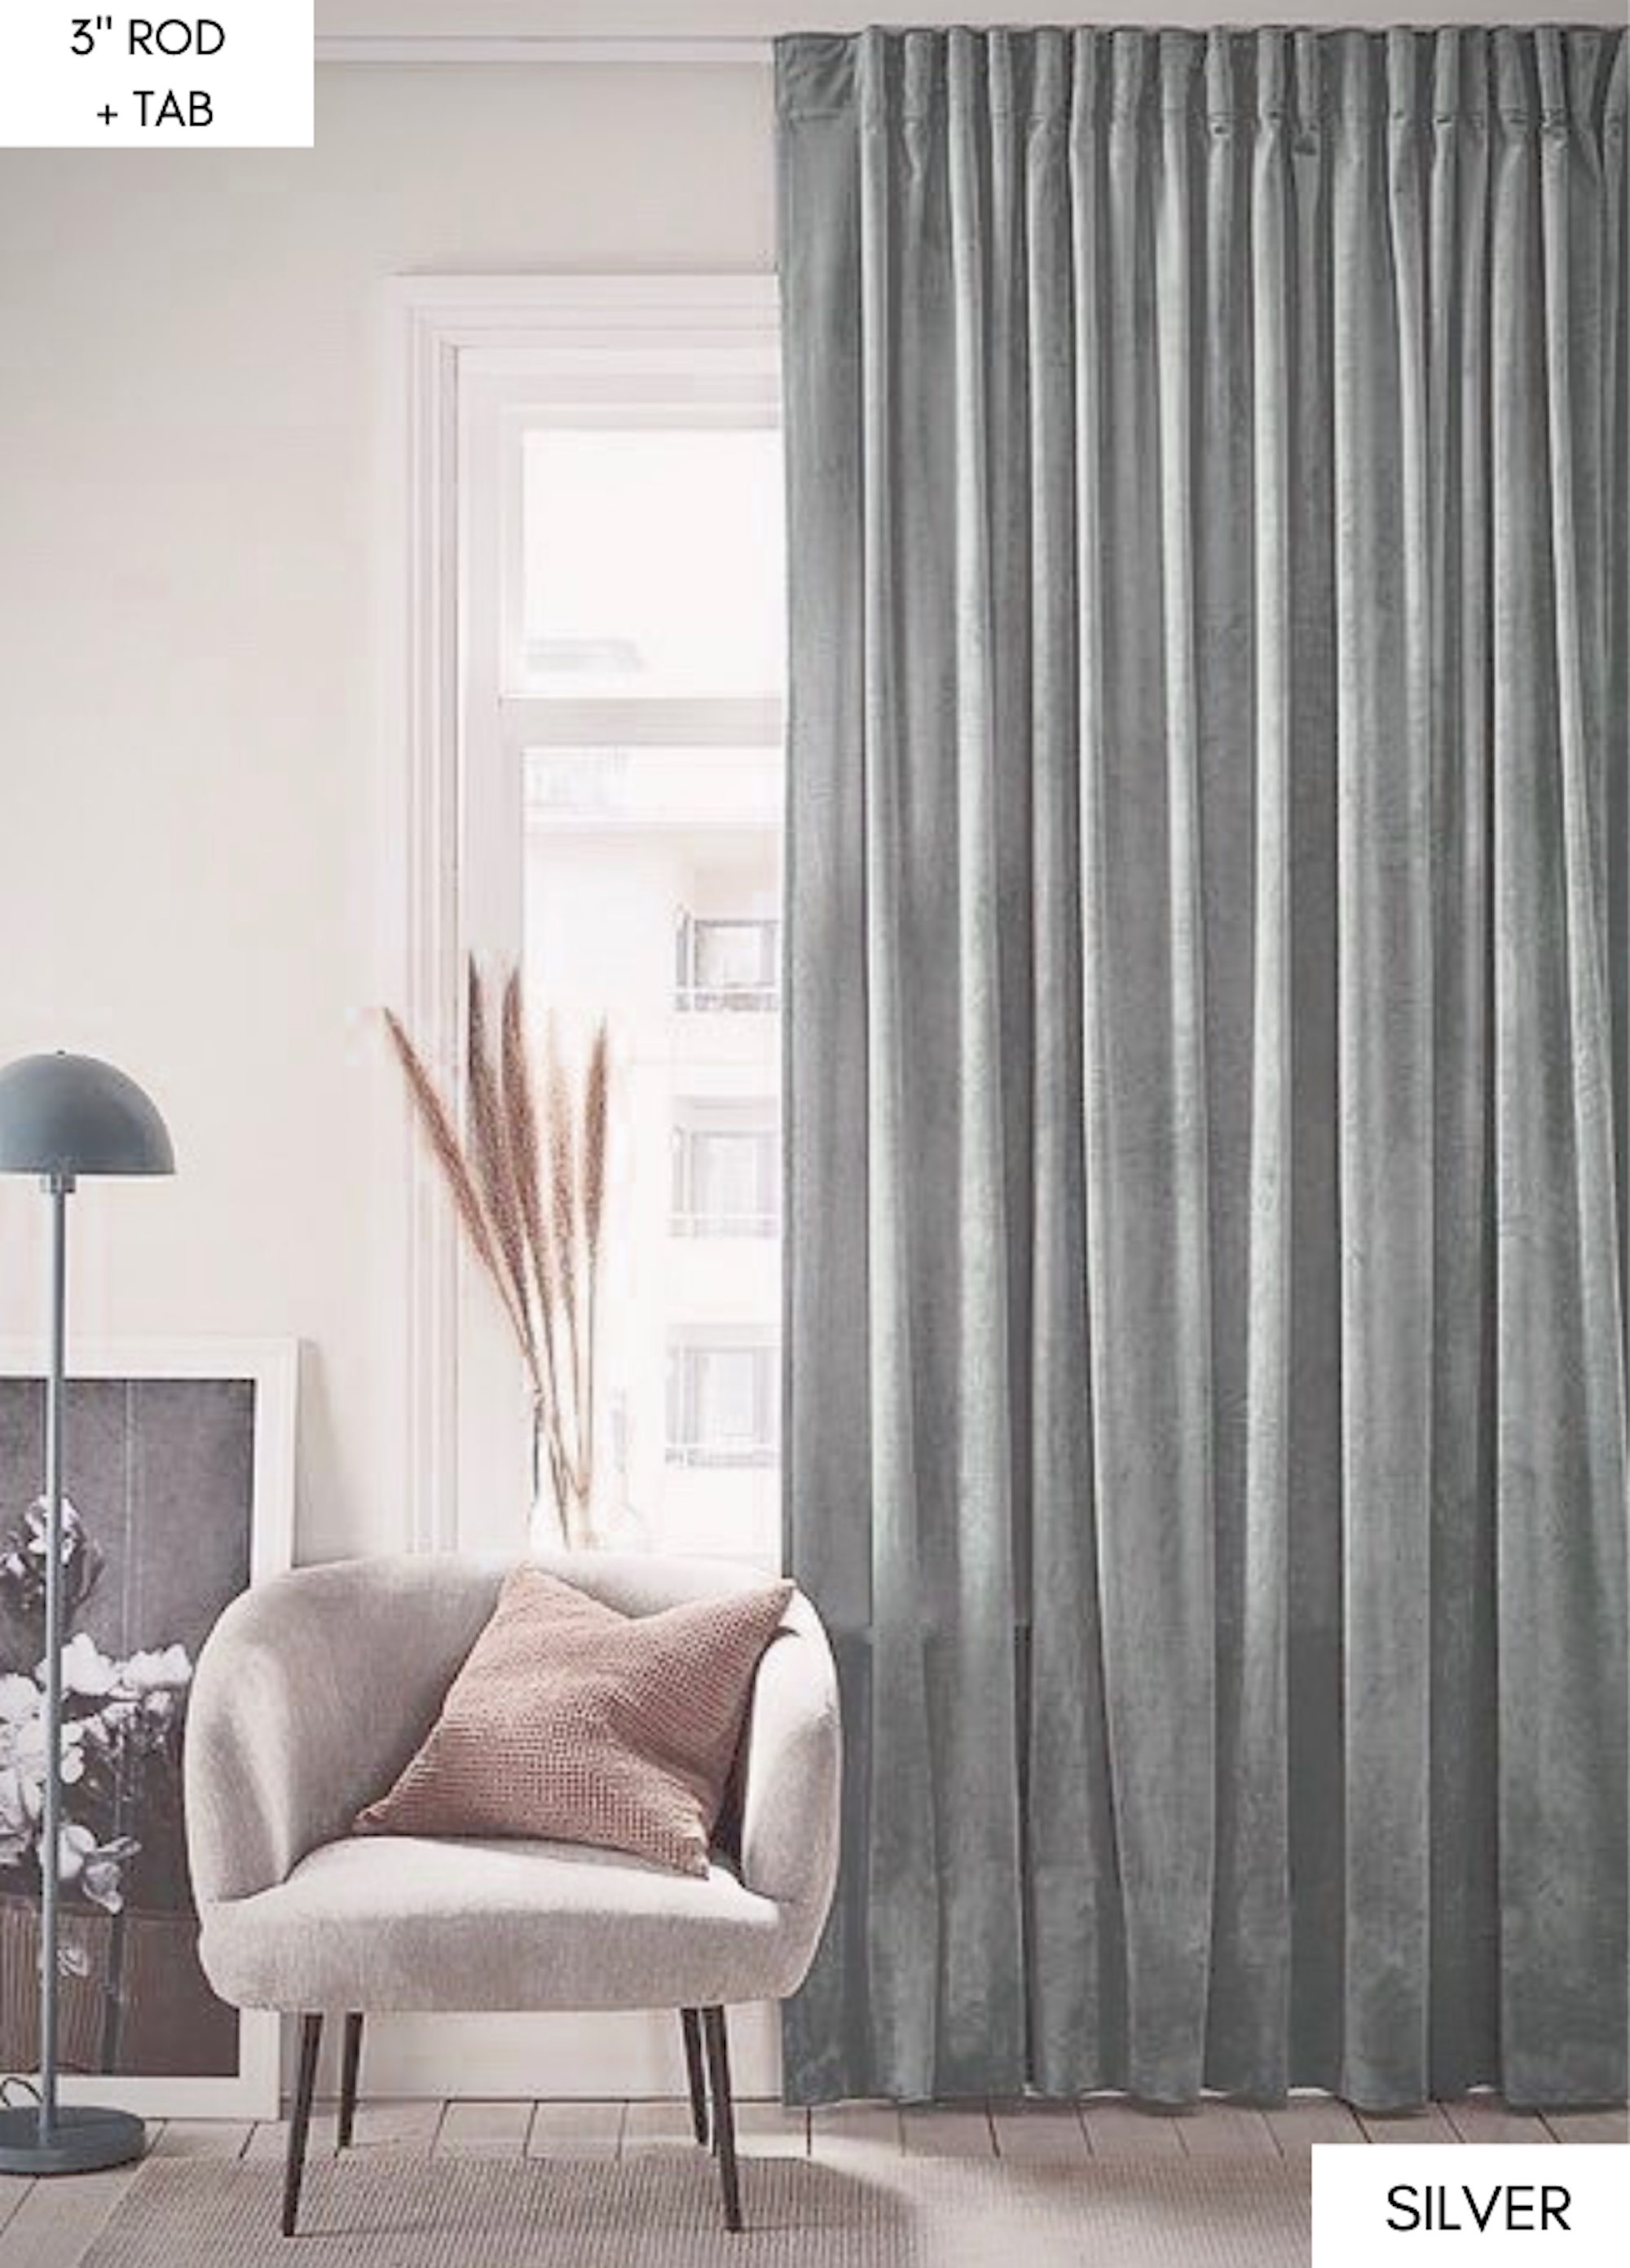 Velvet Curtains Curtain For Kitchen Curtain For Bedroom Etsy In 2020 Dining Room Curtains Velvet Curtains Panel Curtains